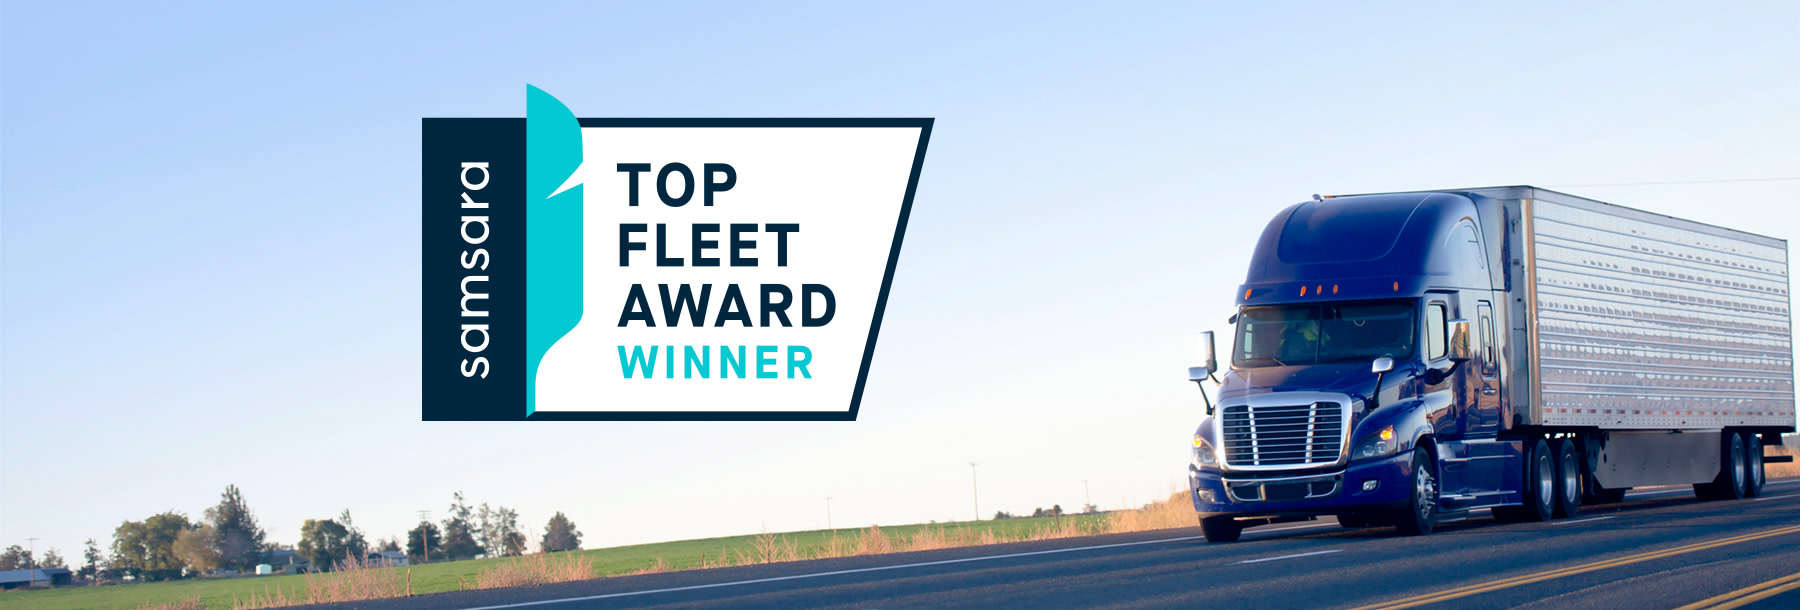 Announcing the 2019 Samsara Top Fleet Award Winners